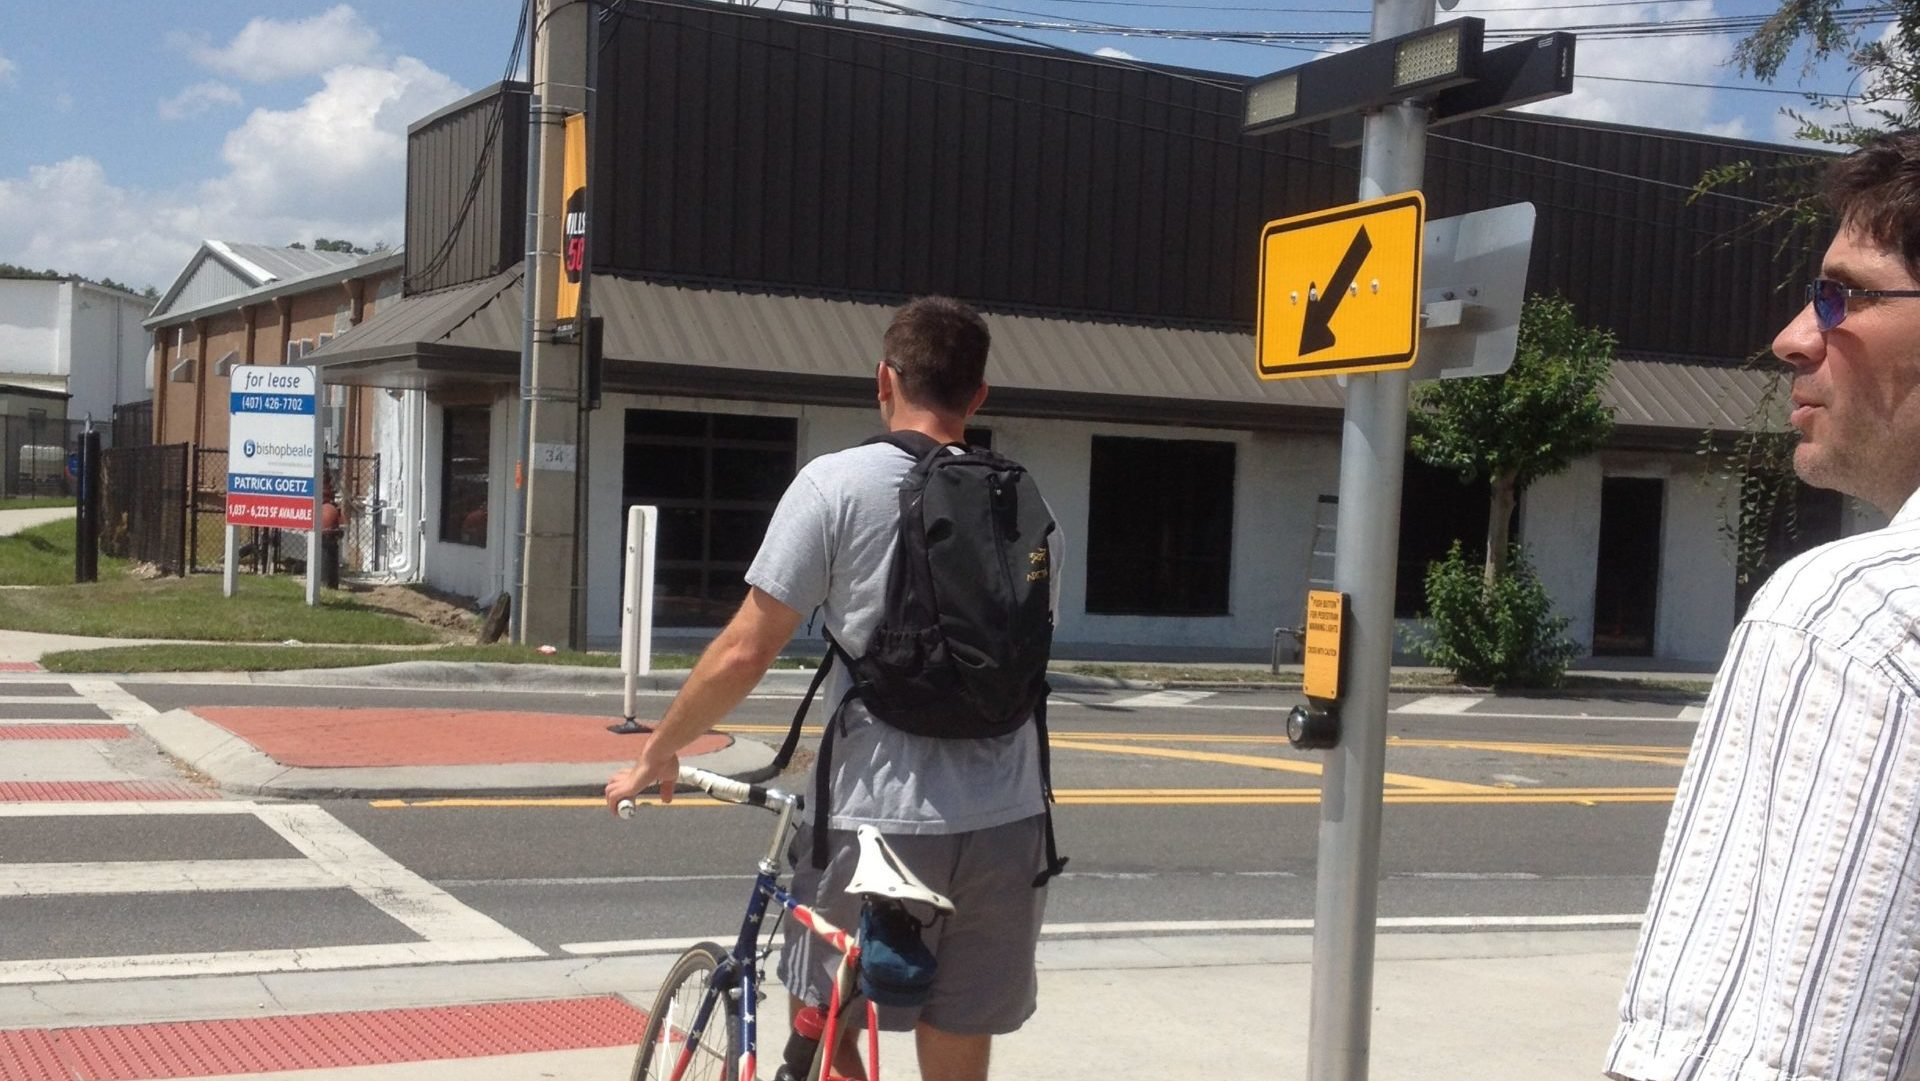 Feds To Hold State DOTs Accountable On Bike/ped Safety